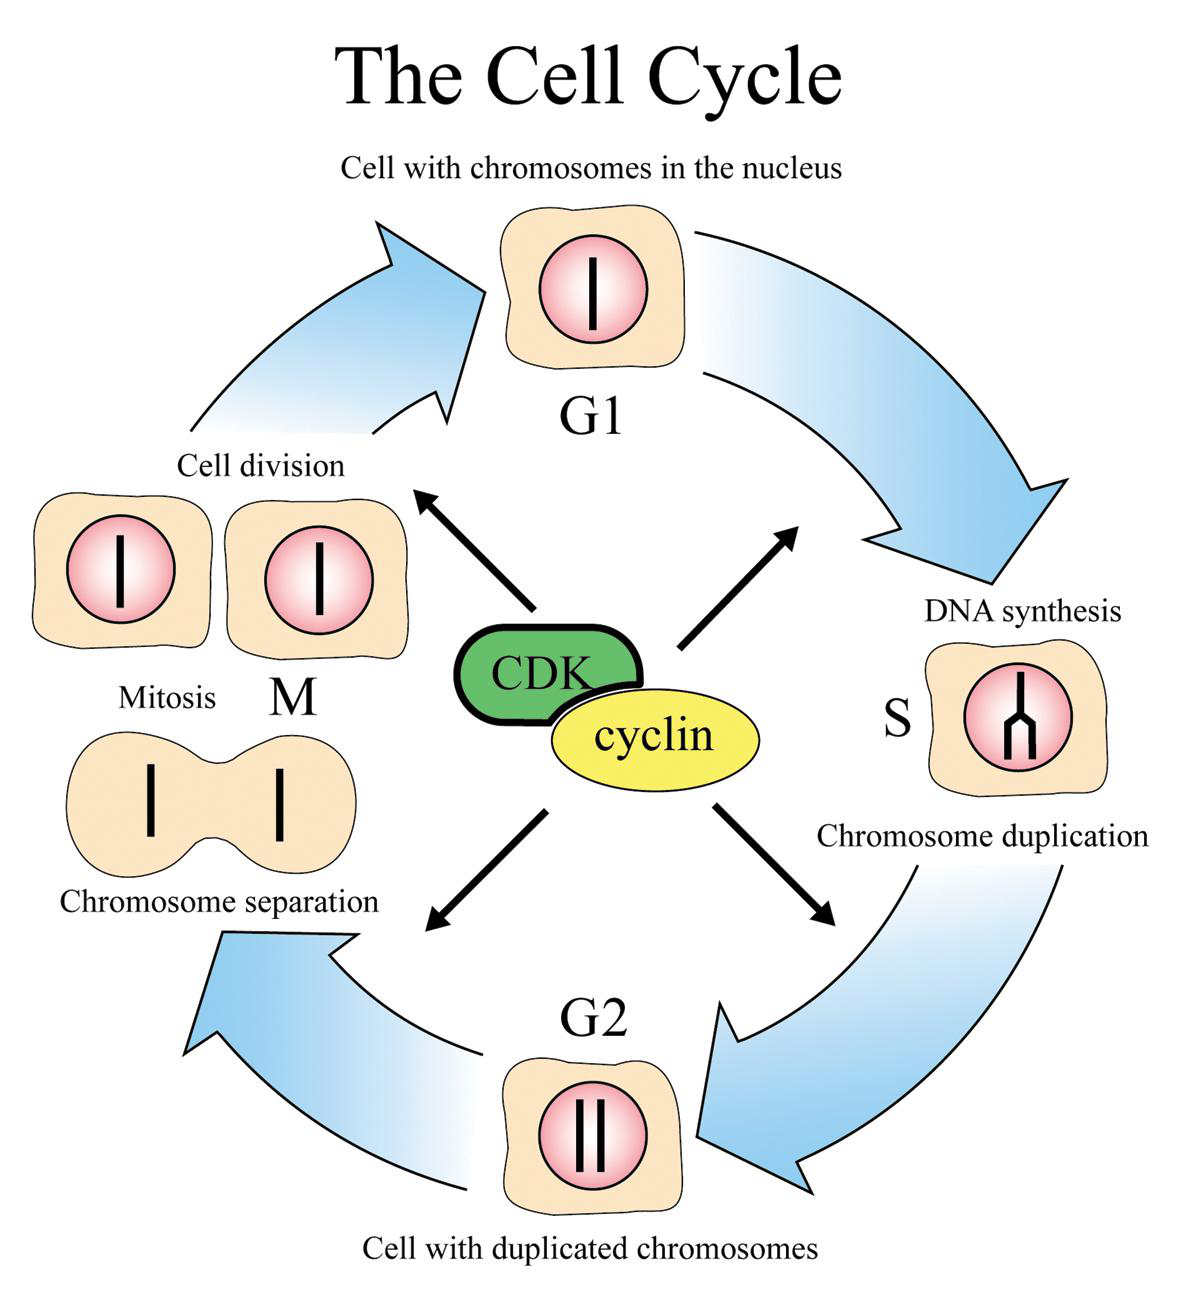 Cell division lesson 0426 tqa explorer cell division c mitosis d chromosome duplication pooptronica